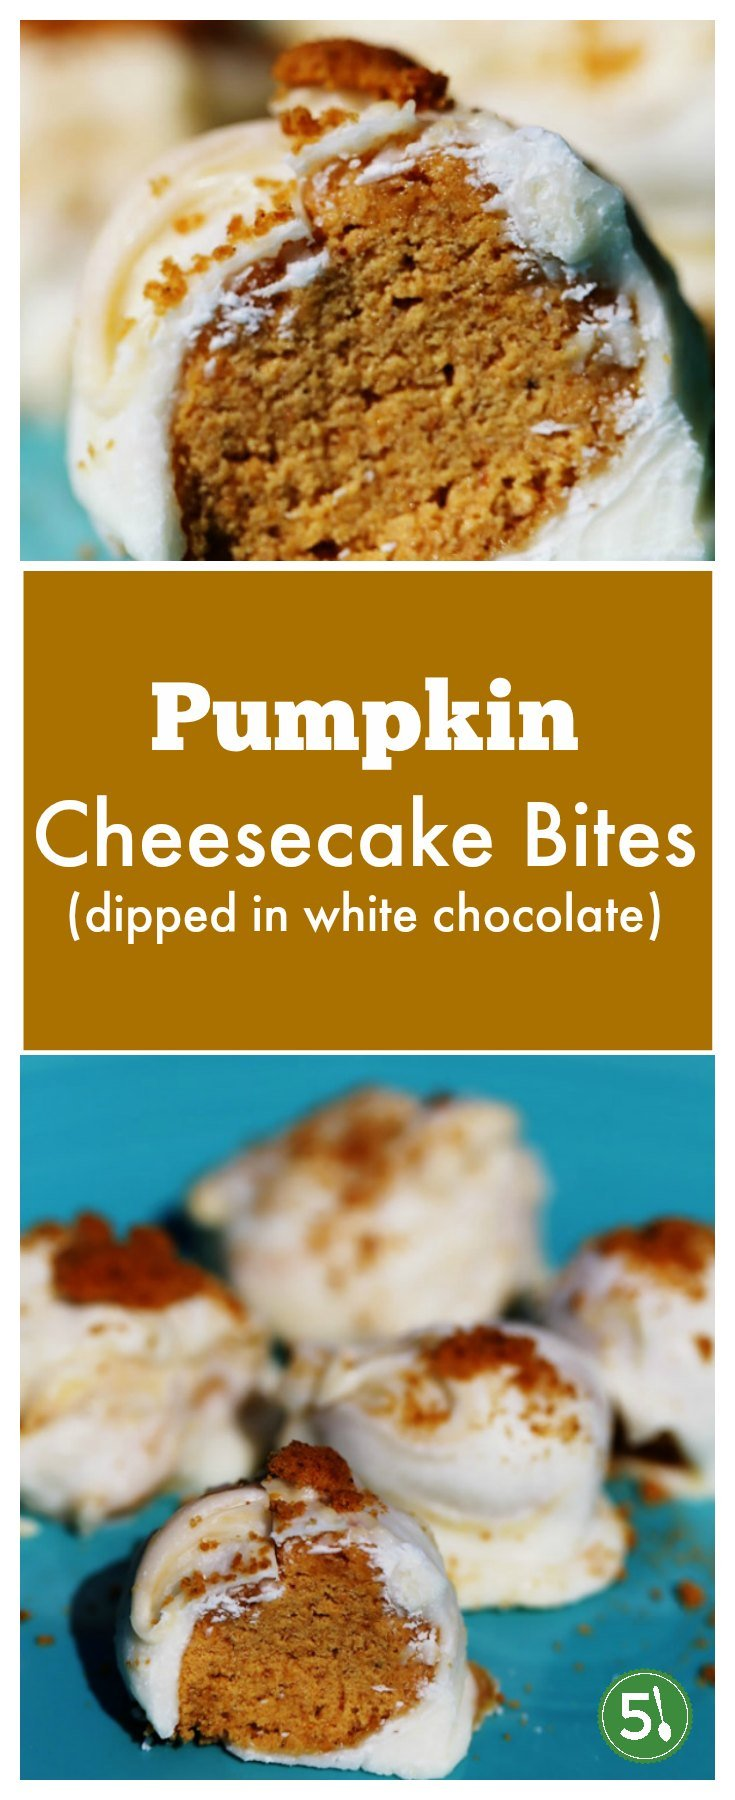 No bake pumpkin cheesecake bites are easy to whip up as delish treats for family and friends.  So festive filled with pumpkin spice, this recipe will put you in the mood for a Fall party.